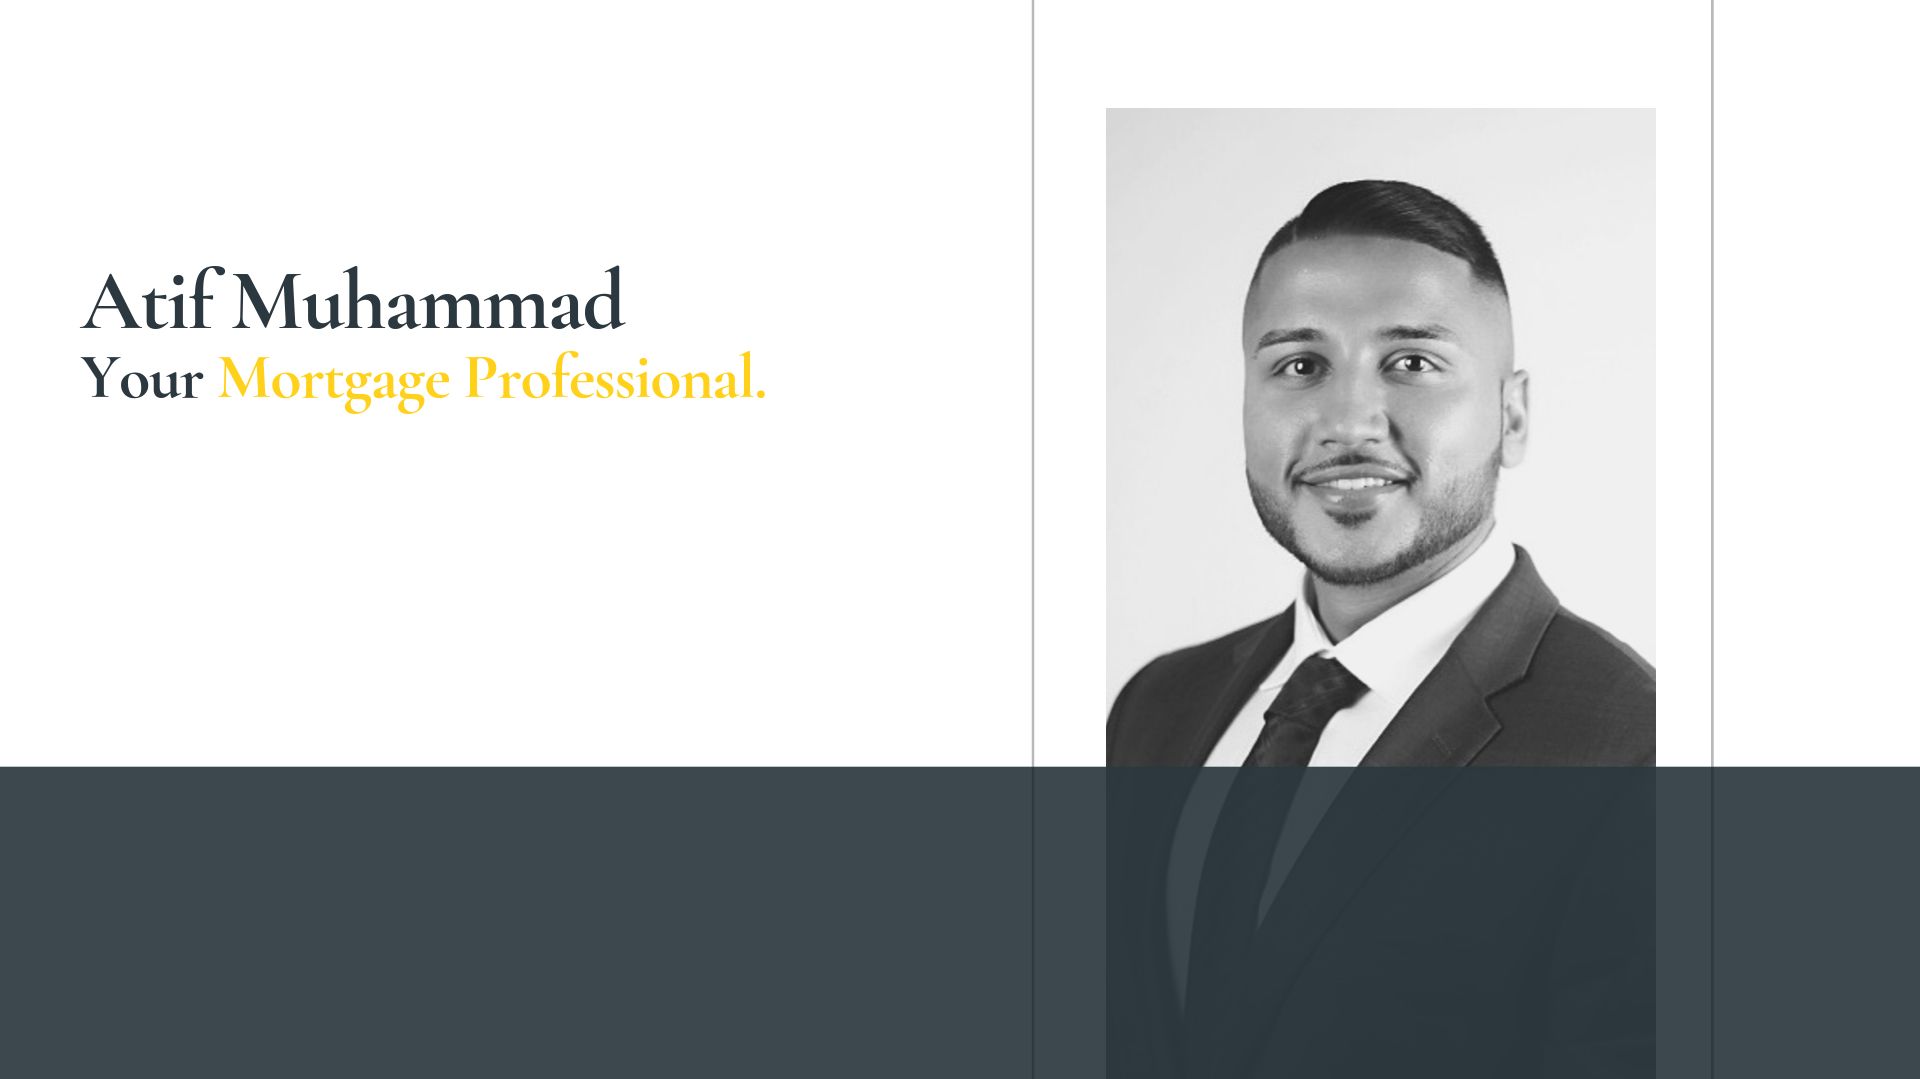 Atif Muhammad Mortgage Broker